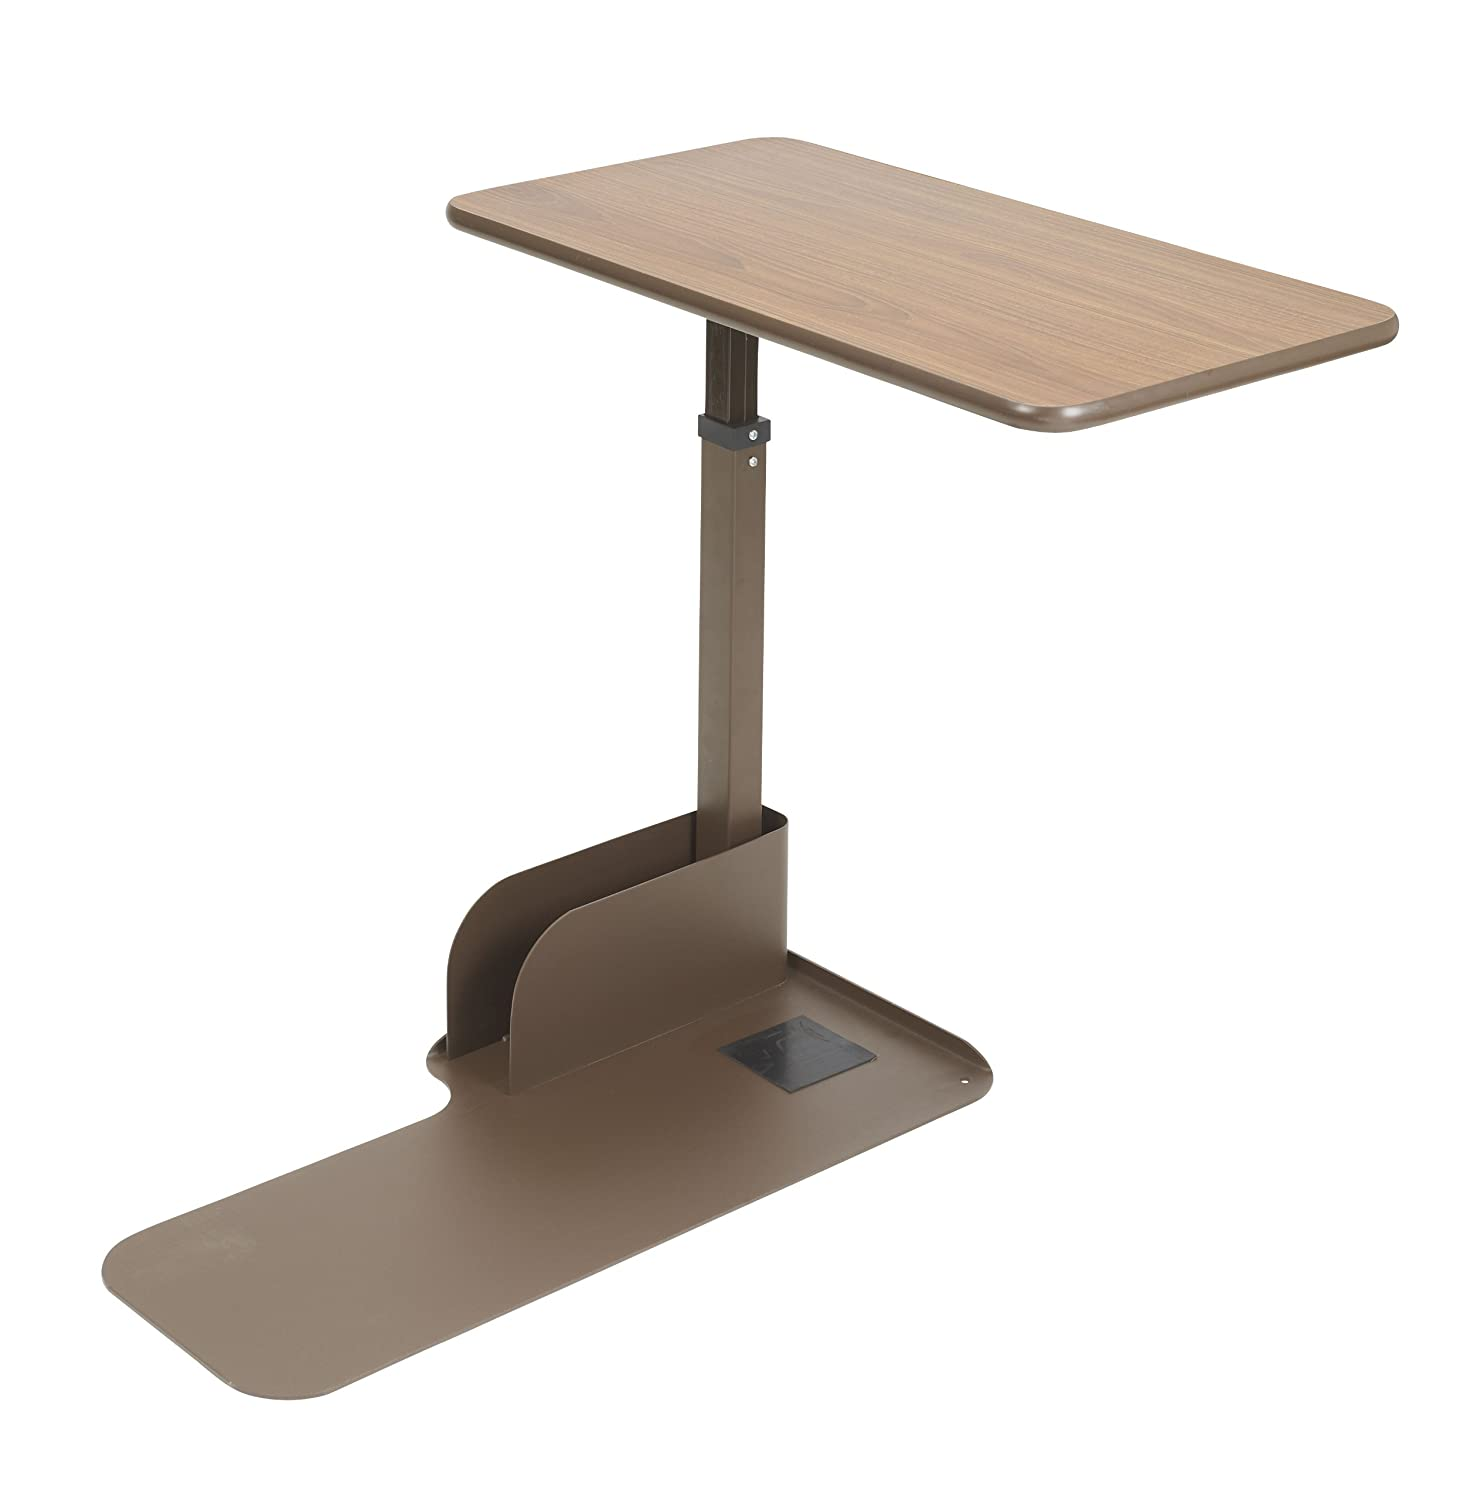 Diy overbed table - Drive Medical Ln Seat Lift Chair Left Side Overbed Table